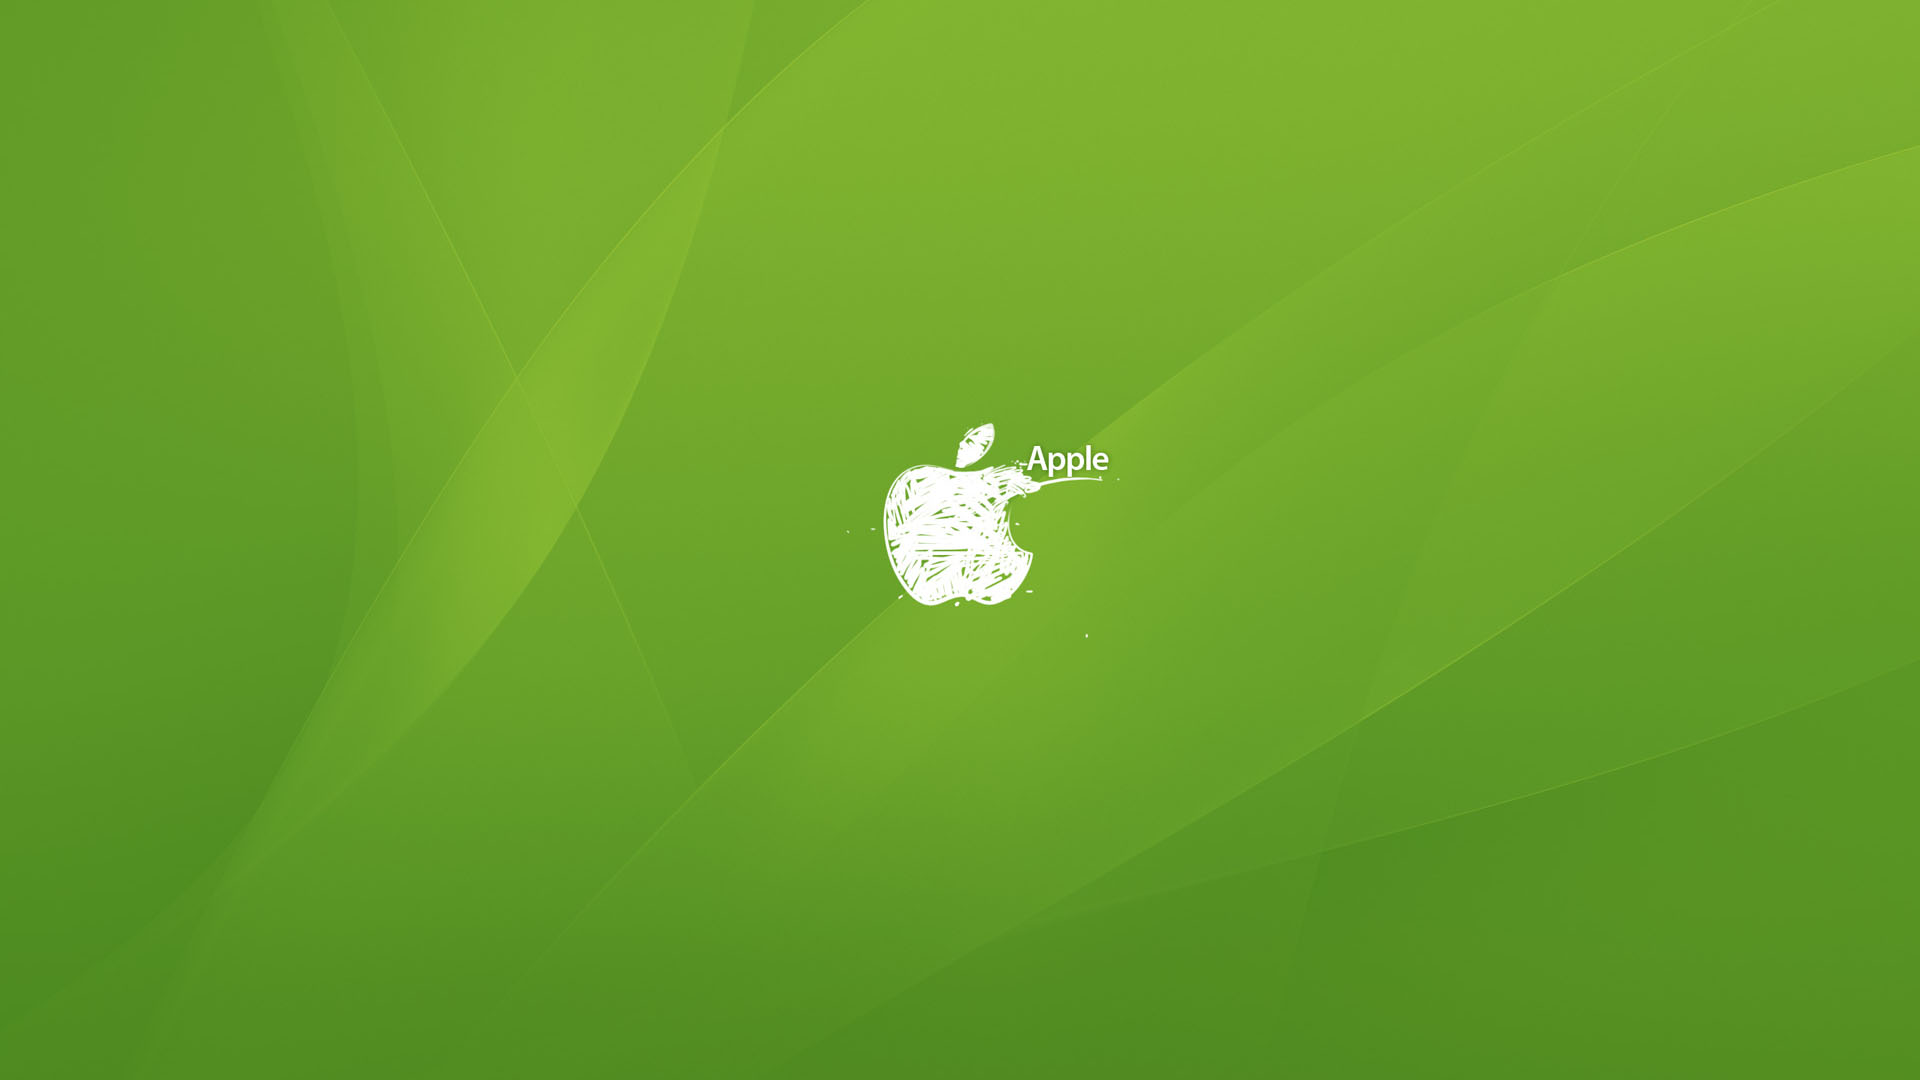 Apple Natural Wallpaper